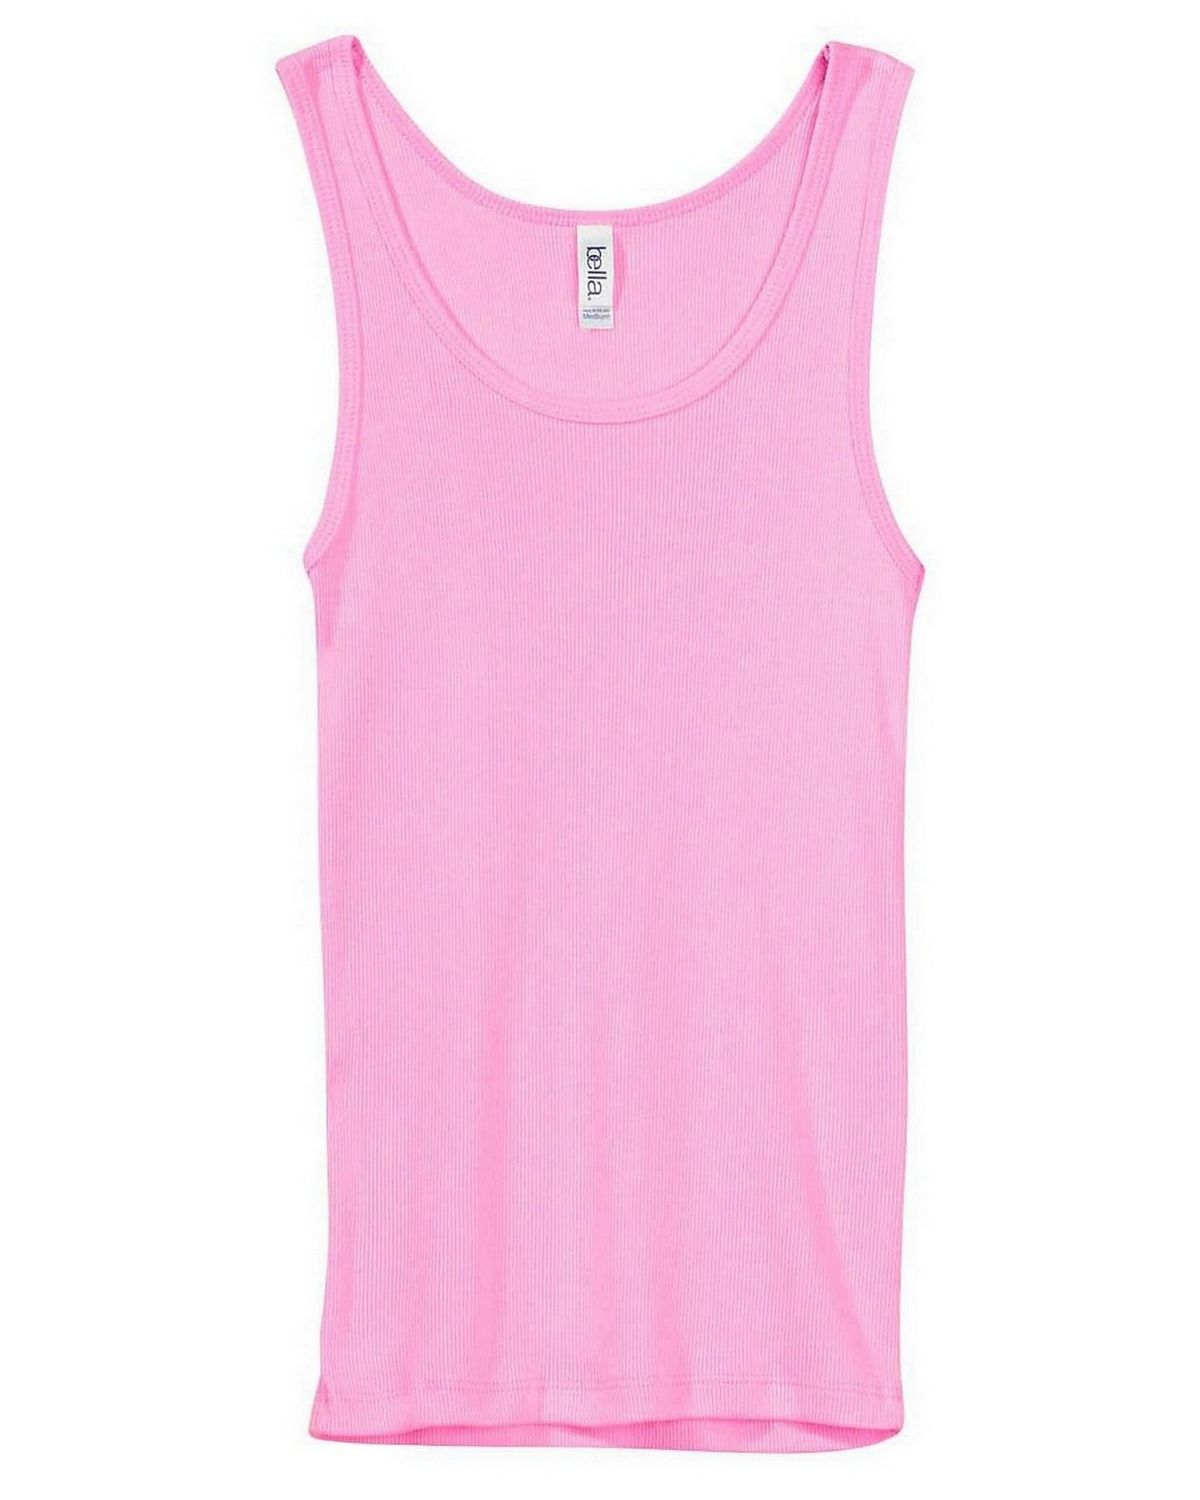 Bella + Canvas 4000 Ladies 2x1 Rib Tank - Pink - S 4000